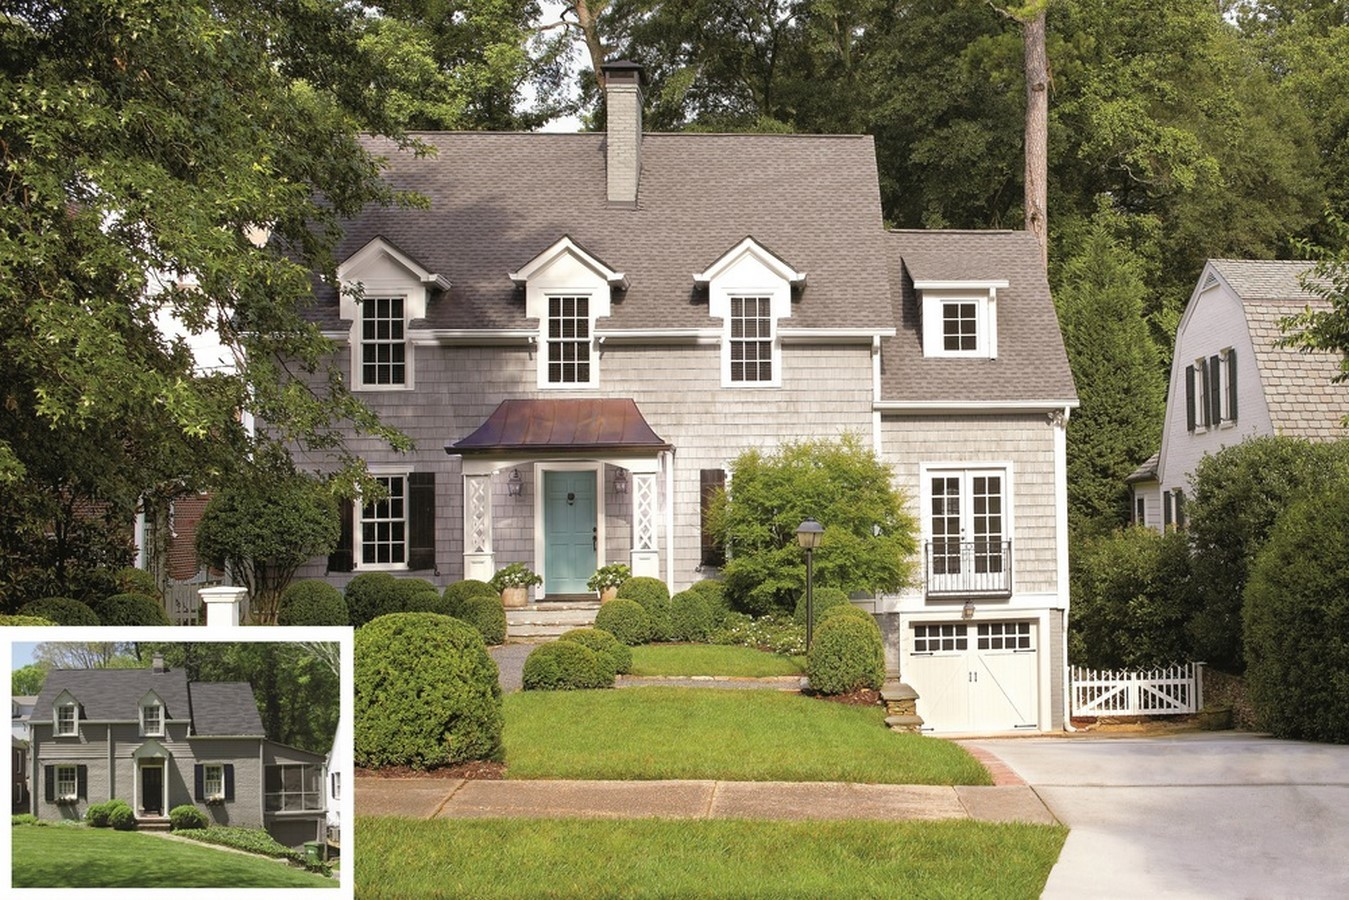 Cape Cod Style Home - Sheet1